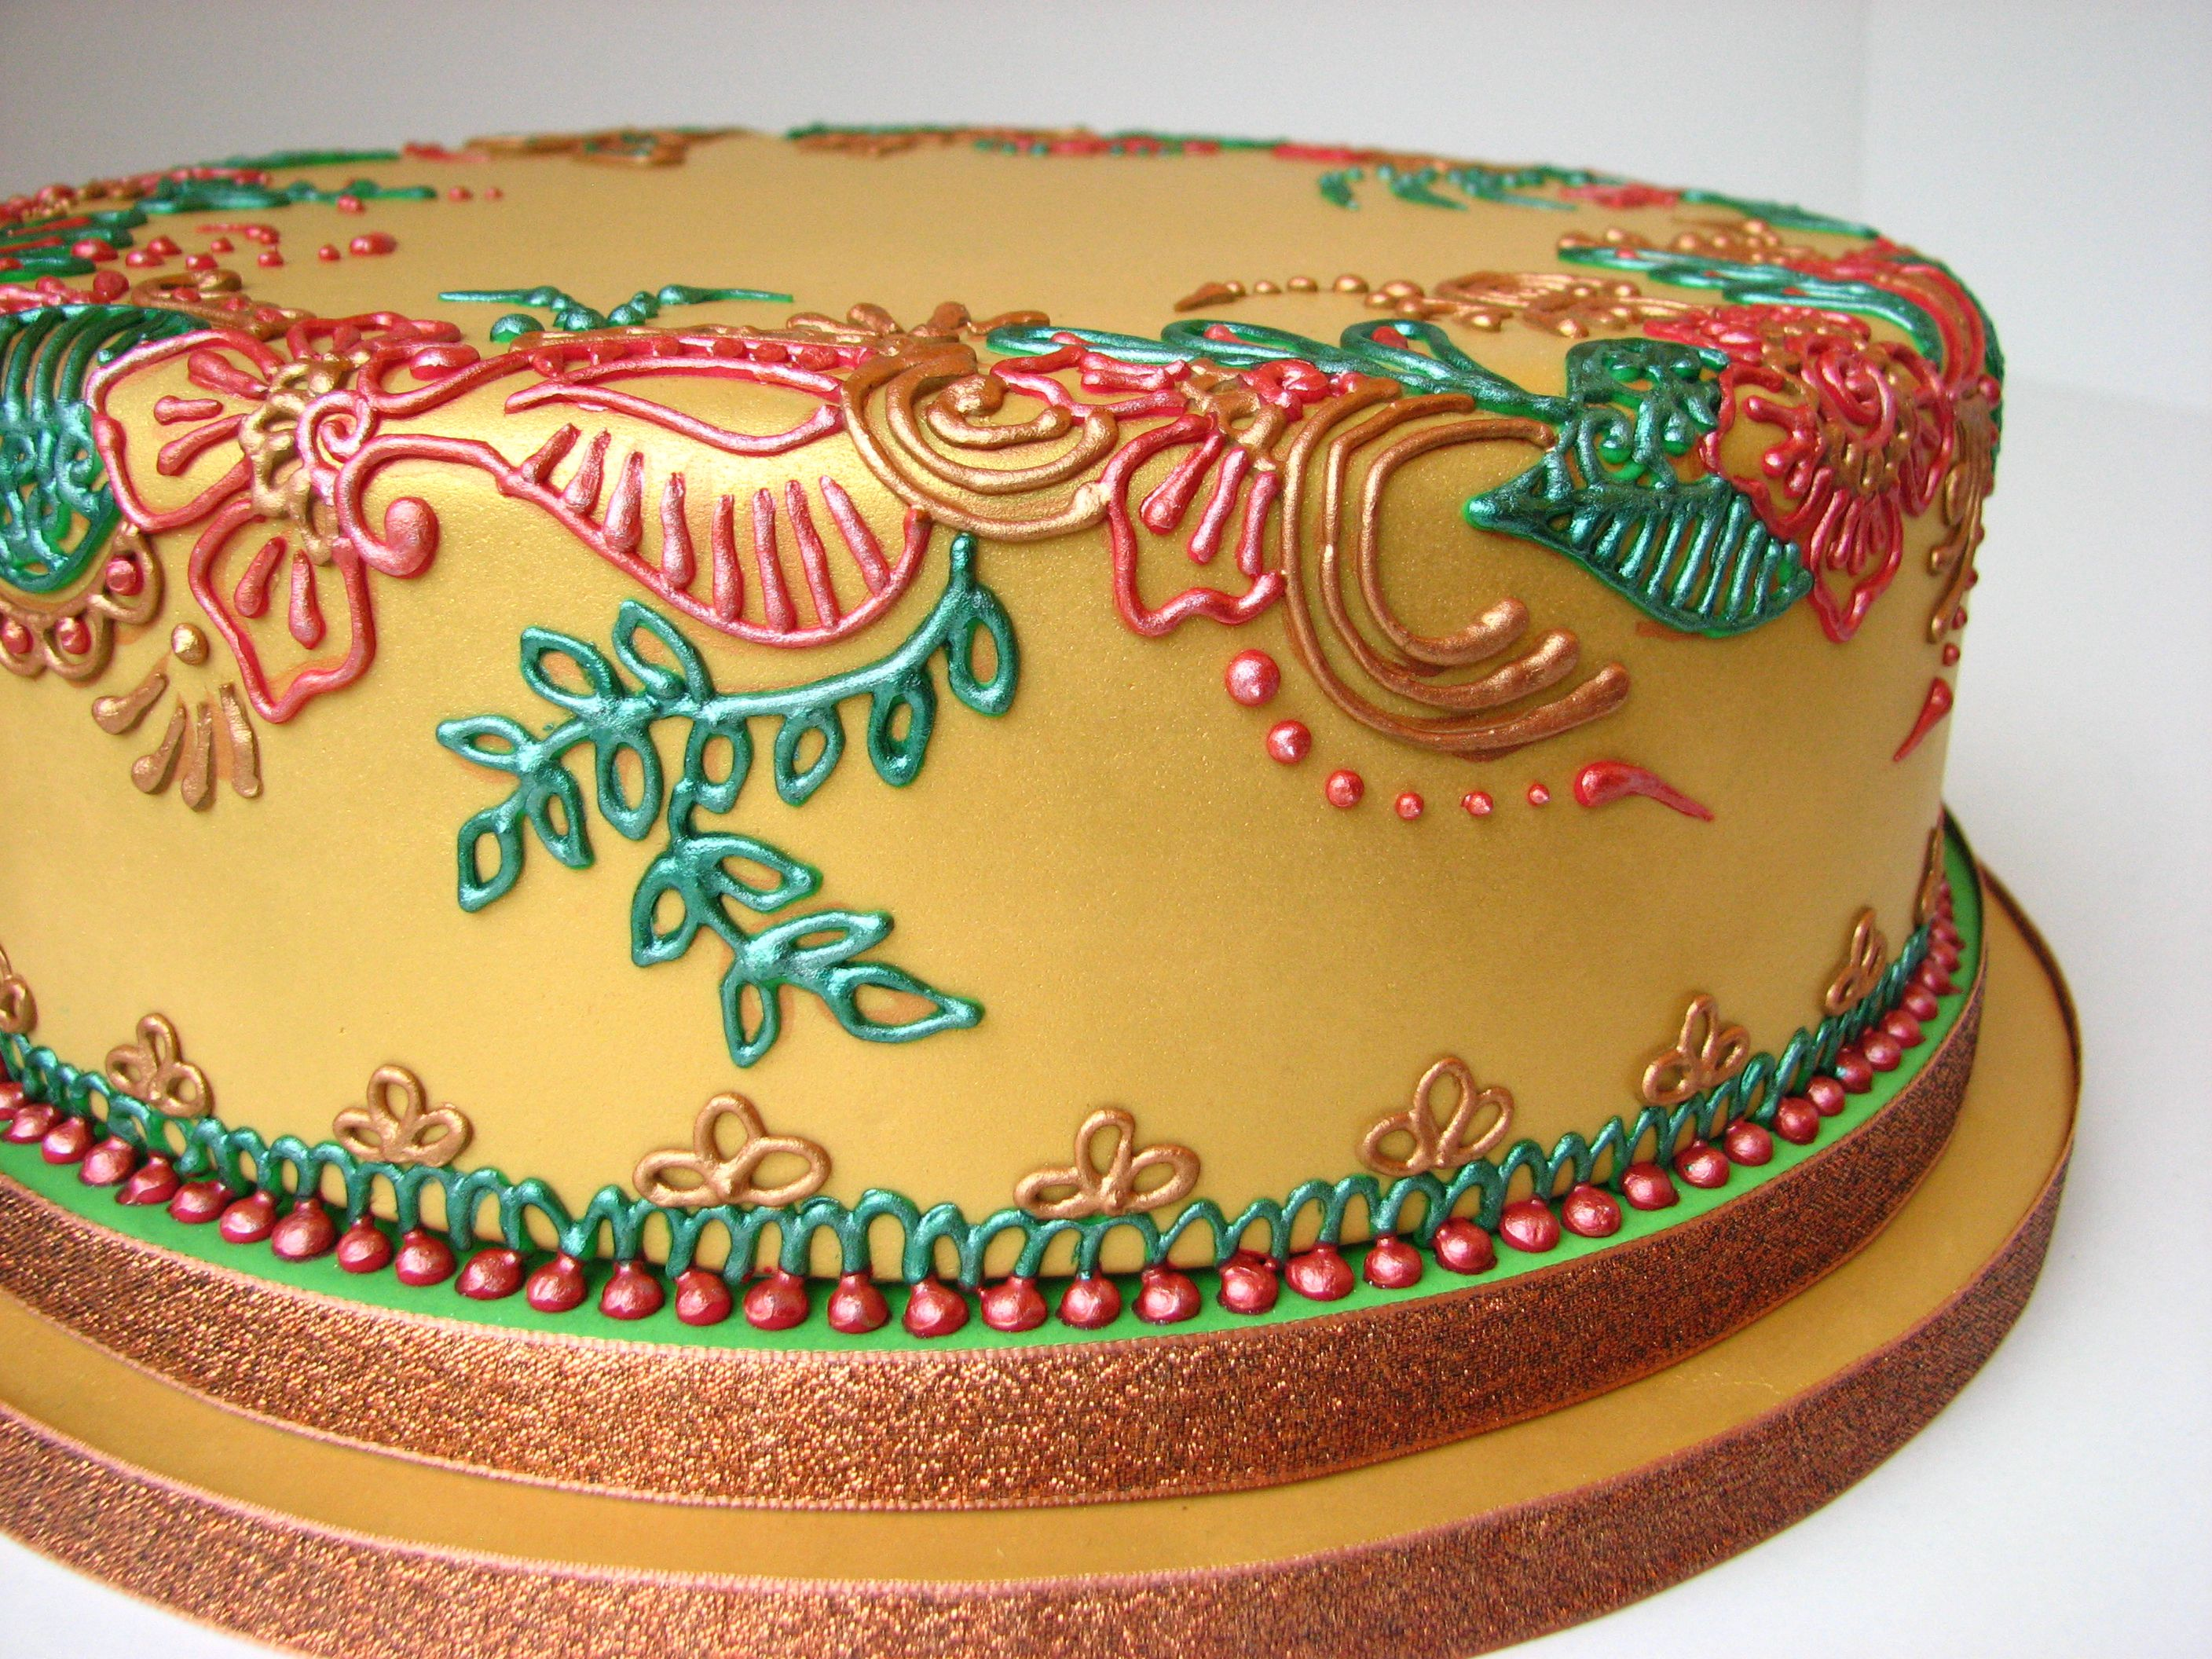 Mehndi Patterns For Cakes : A gold henna mehndi cake with red green and bronze